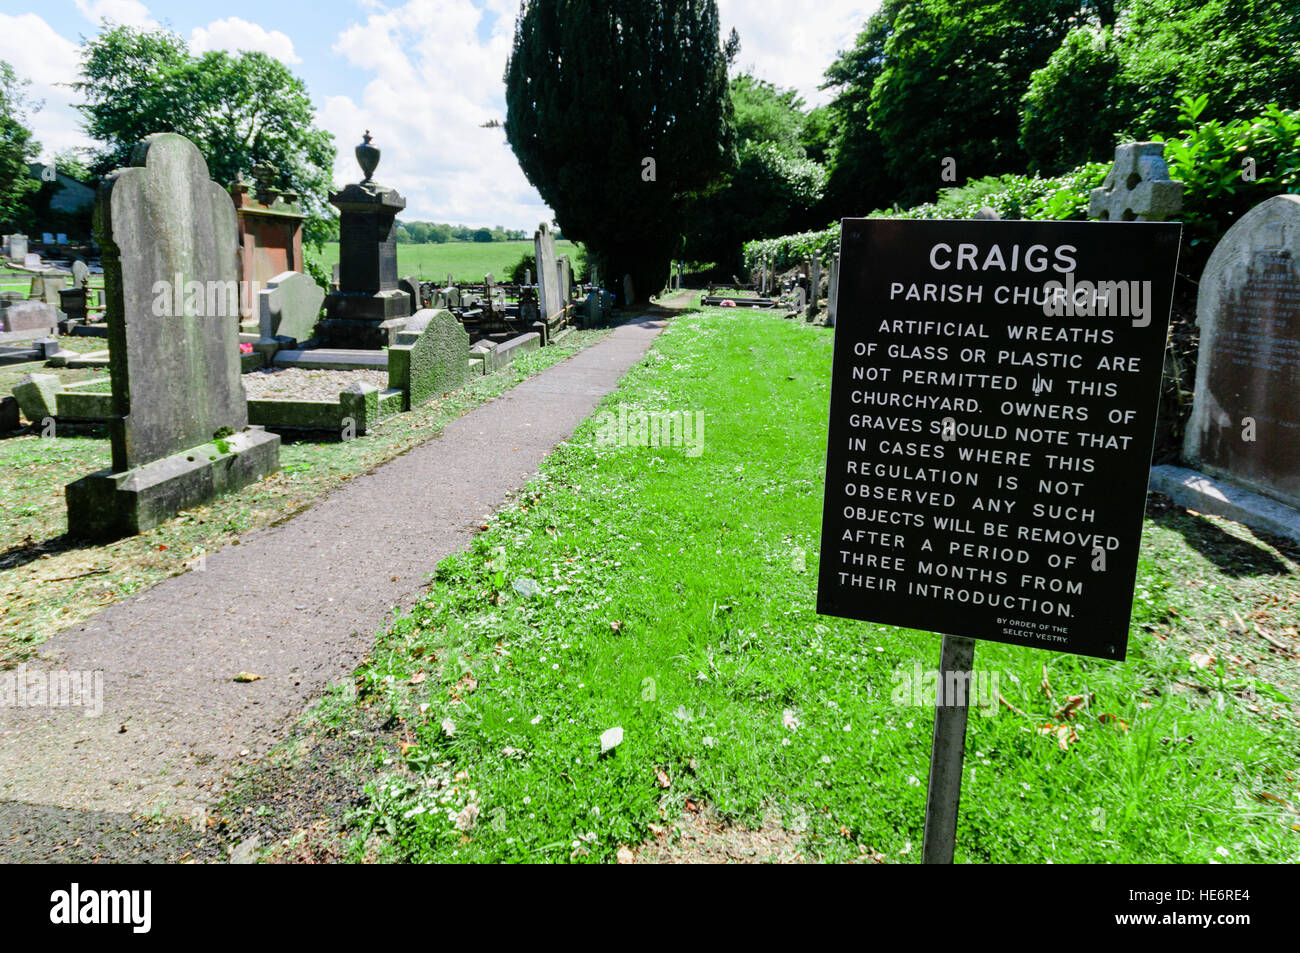 Sign in rural graveyard warning that plastic and glass wreaths are not permitted - Stock Image